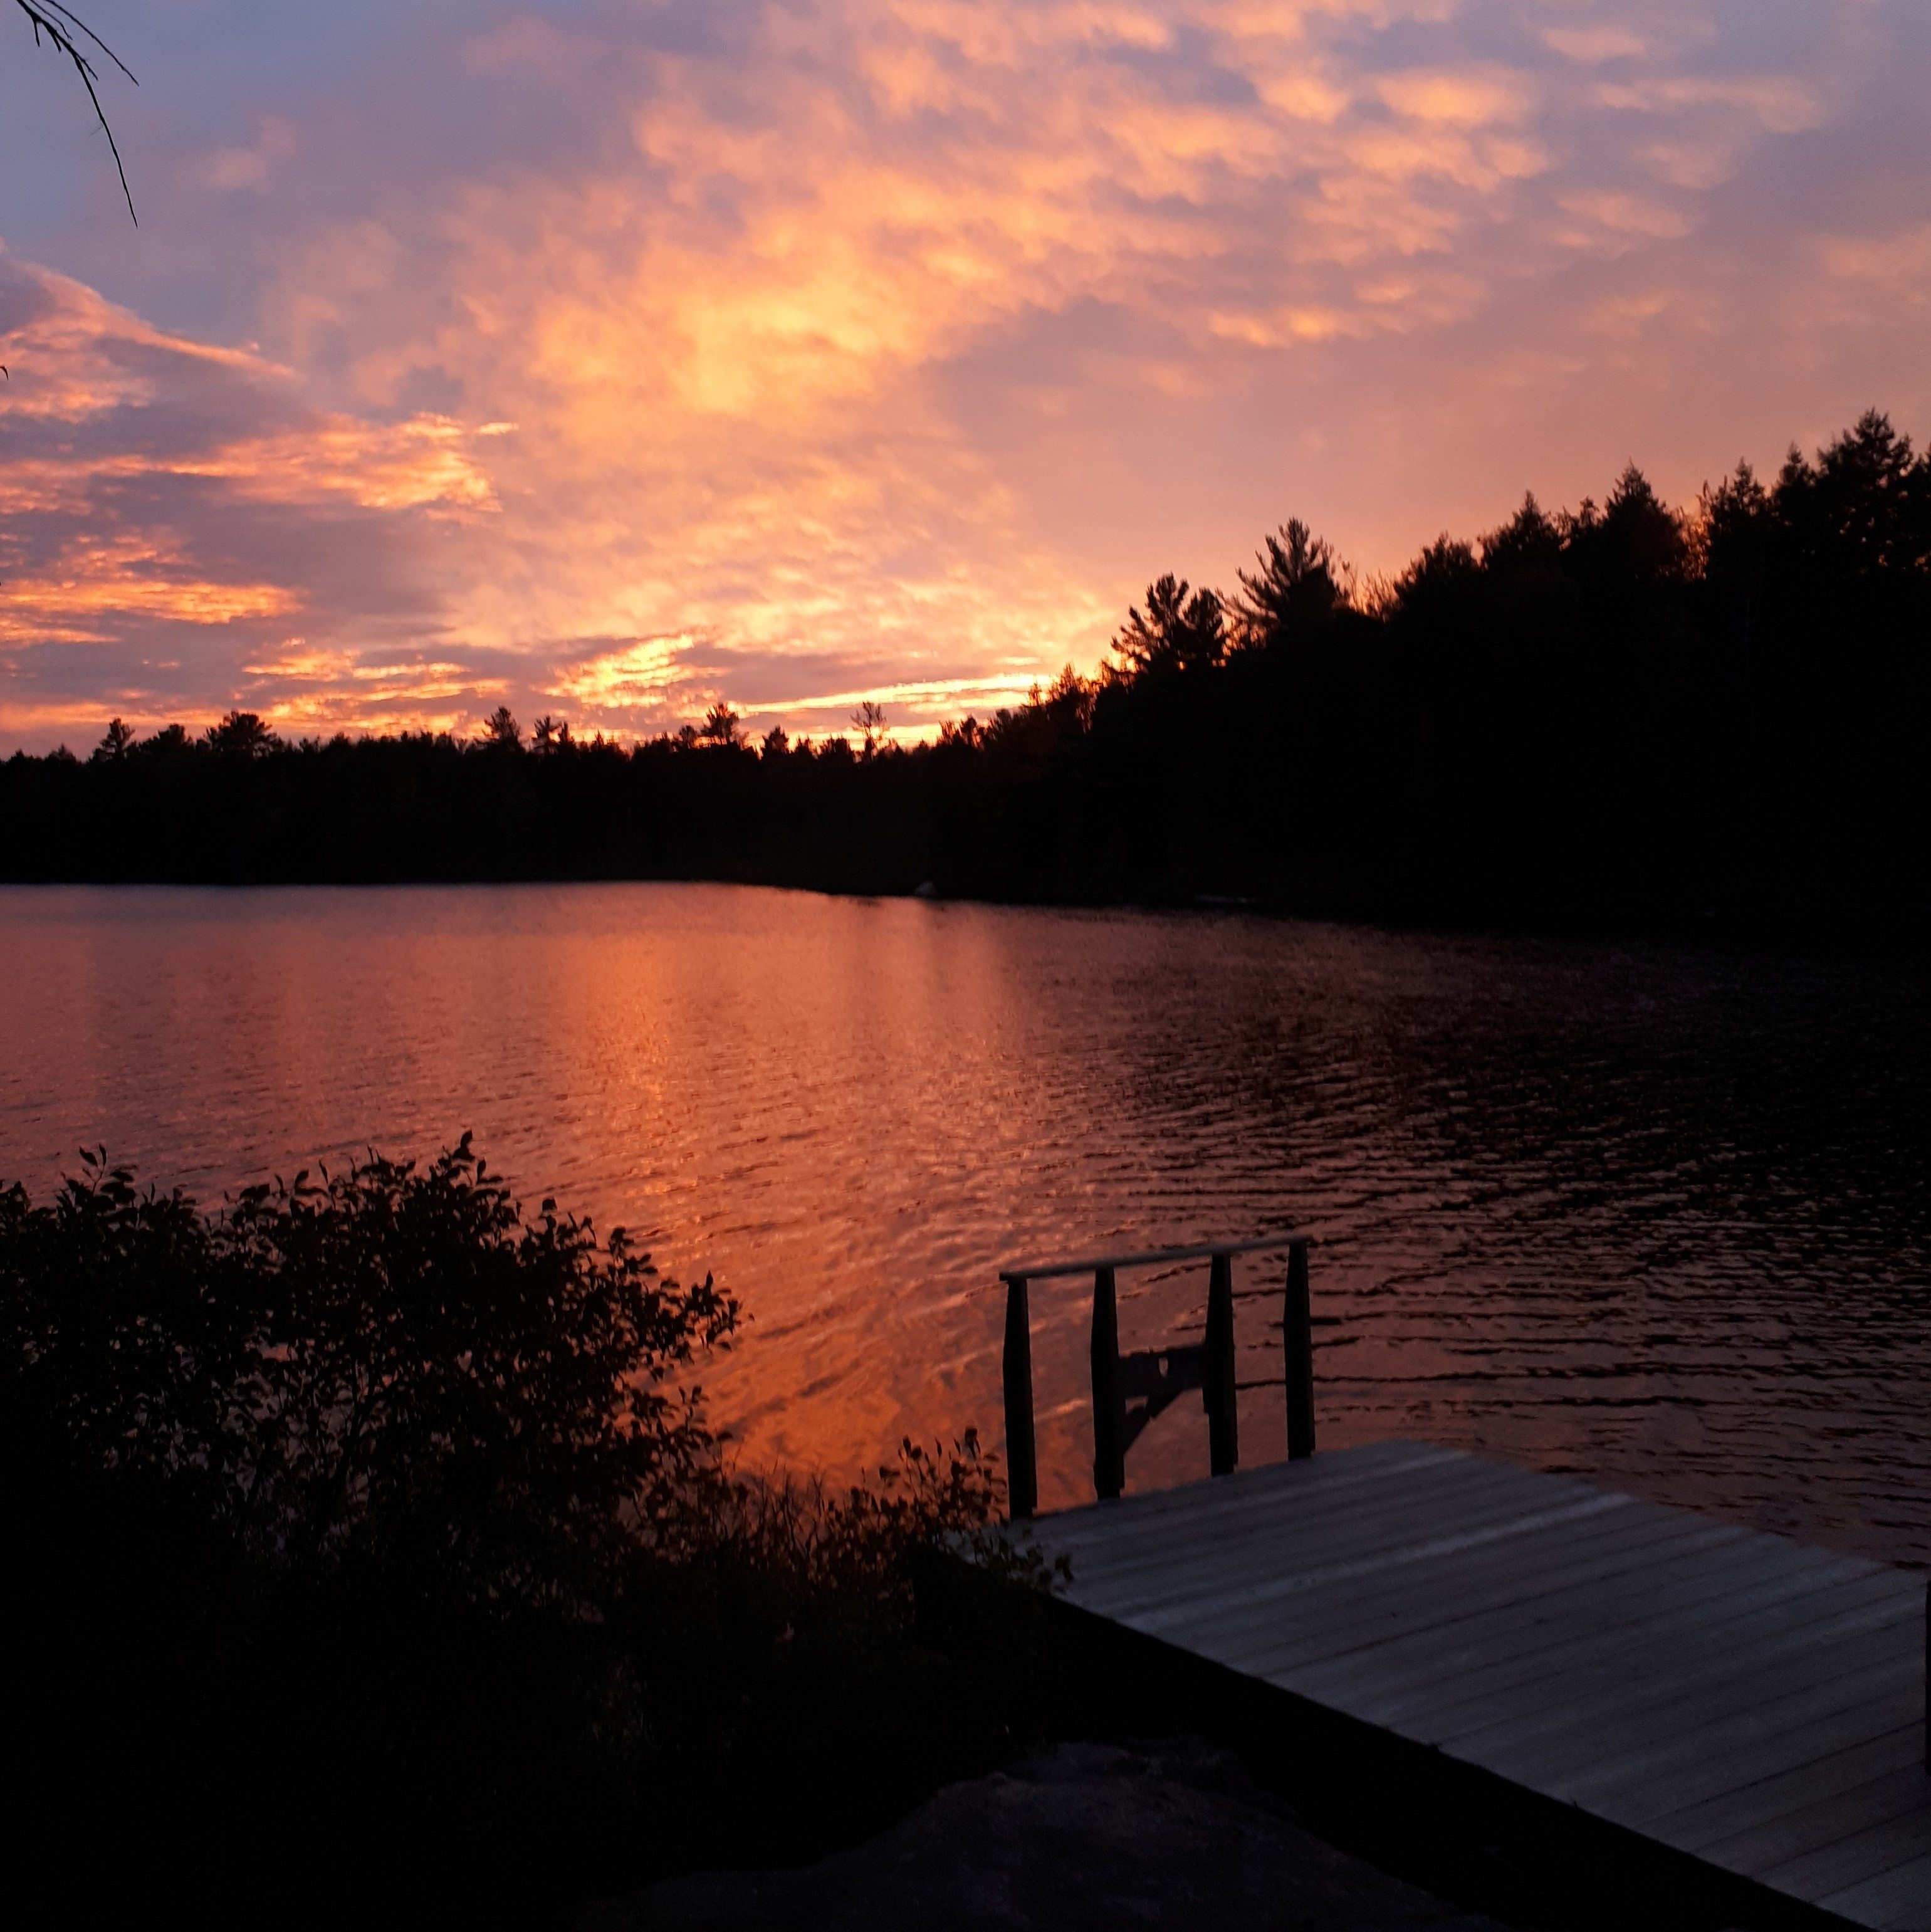 sunset muskoka lake